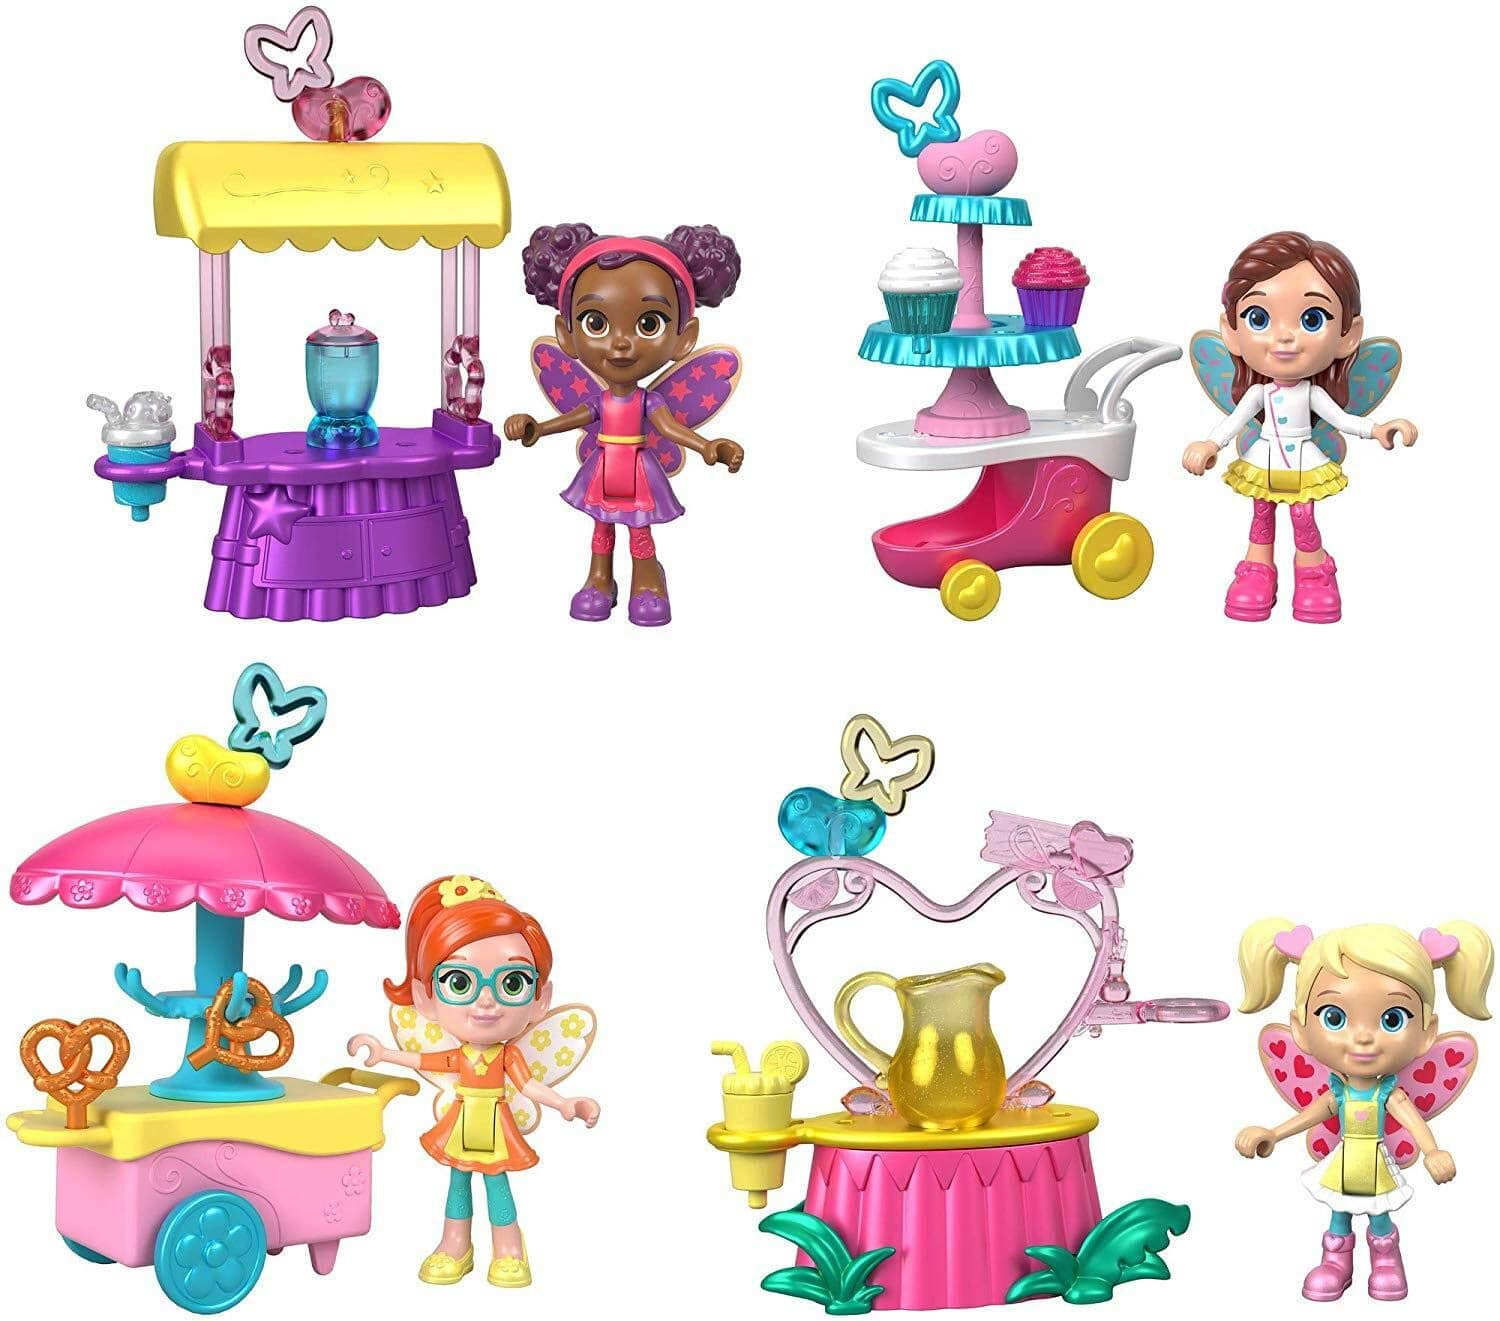 16-Pc Fisher-Price Nickelodeon Butterbean's Café Fairy Friends Figure Pack $10 + Free shipping w/ Amazon Prime or On Orders $25+